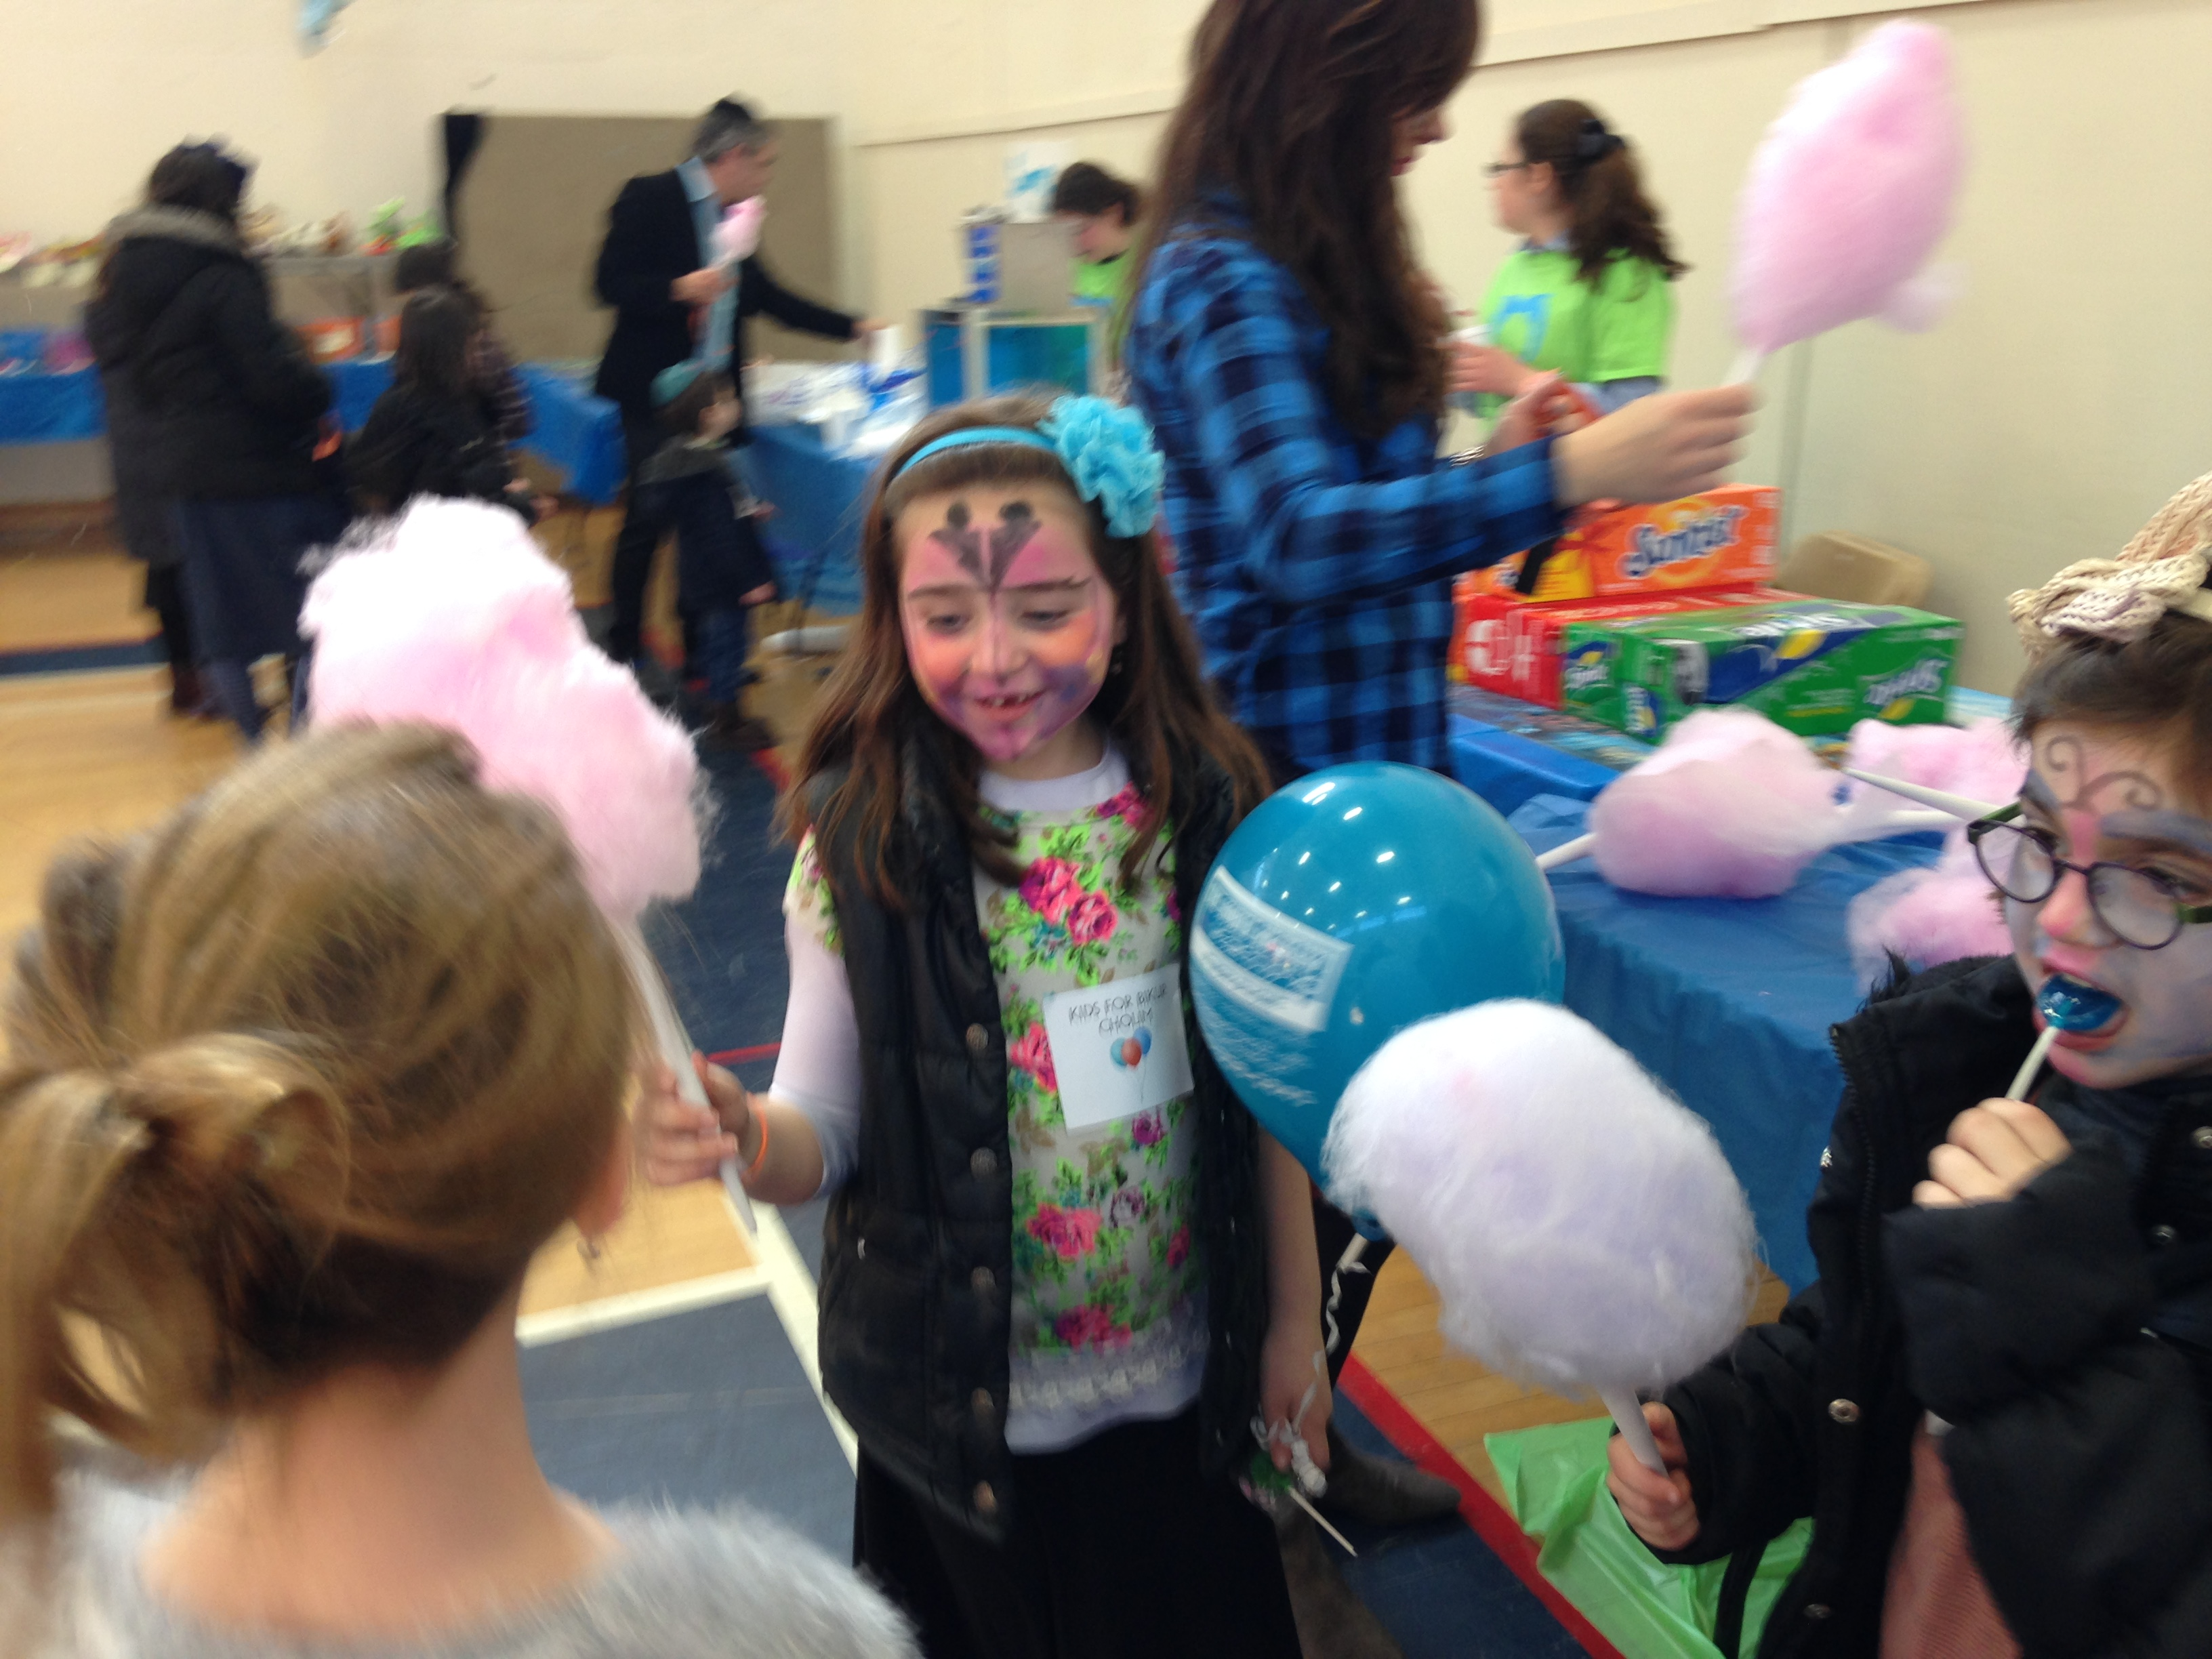 Girl with cotton candy painted face